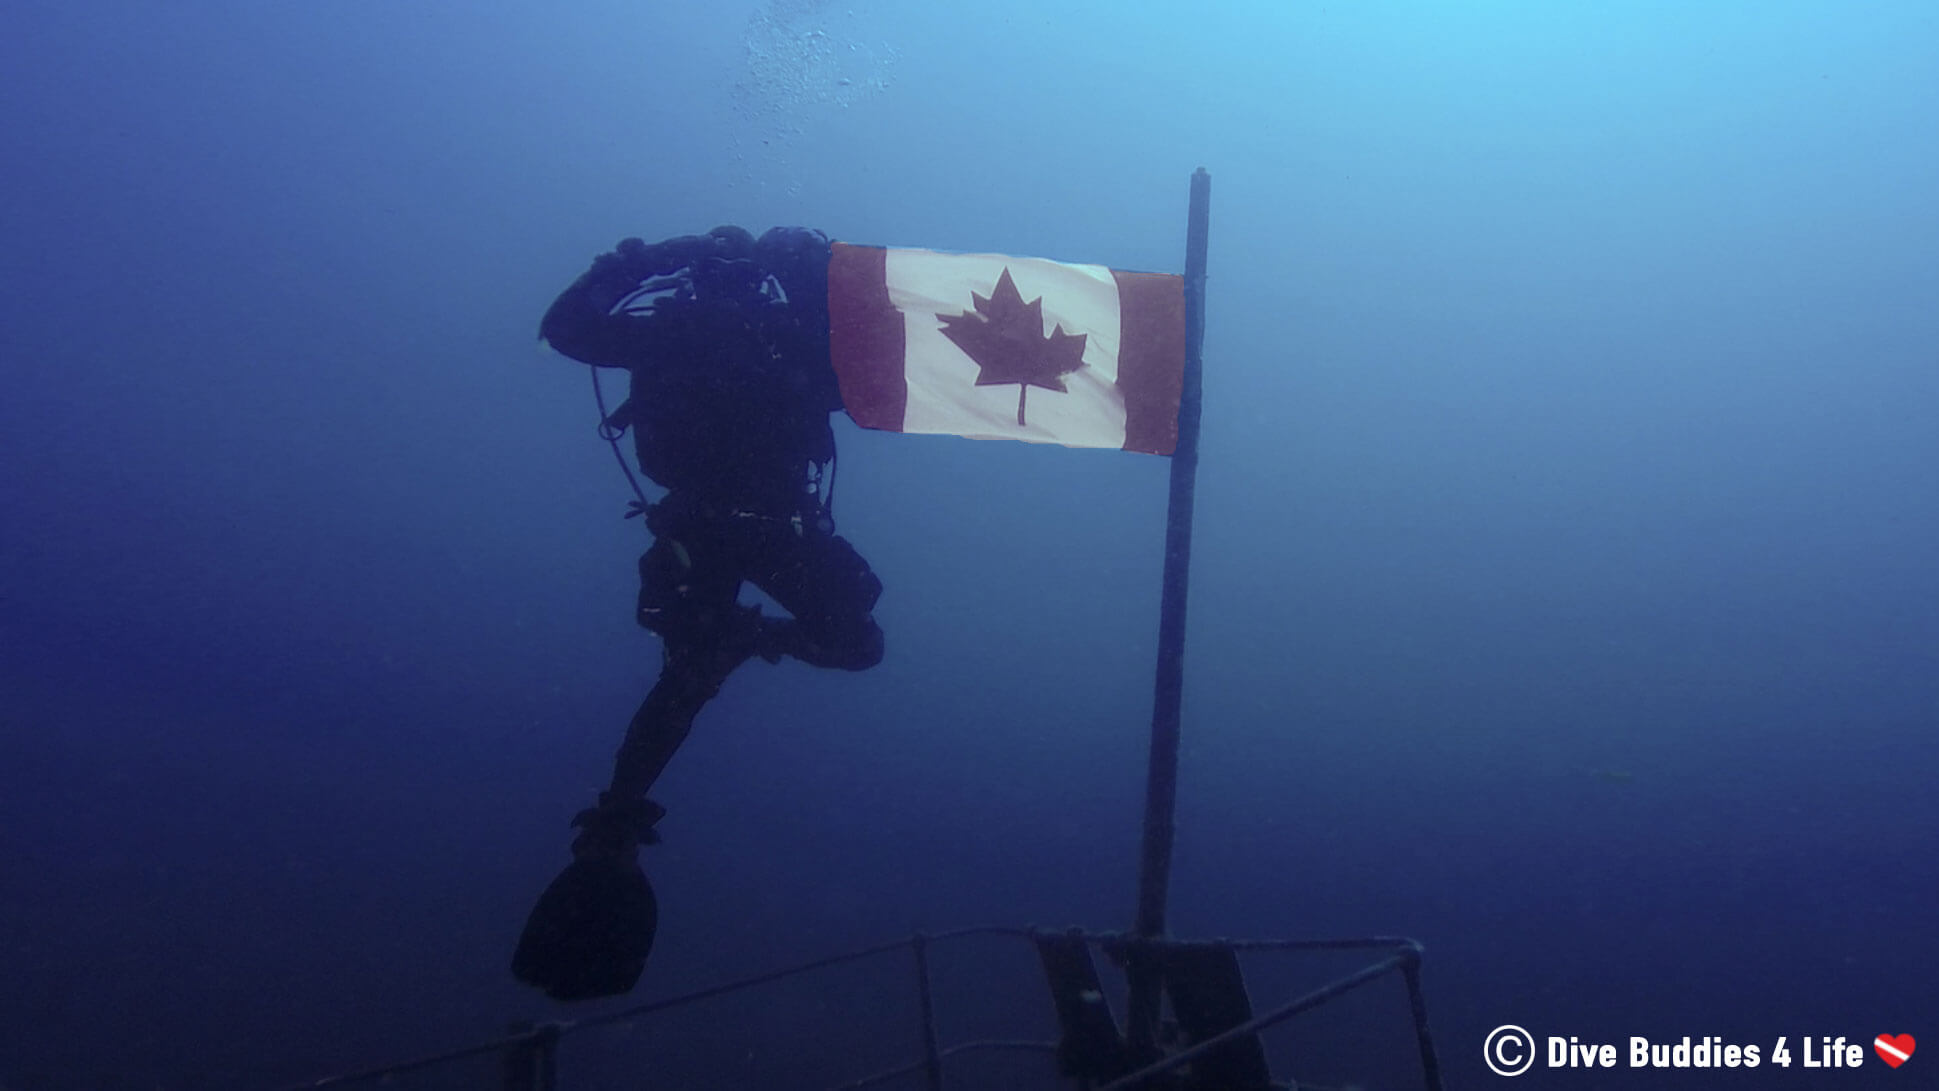 Joey Scuba Diving The Niagara II With A Canadian Flag